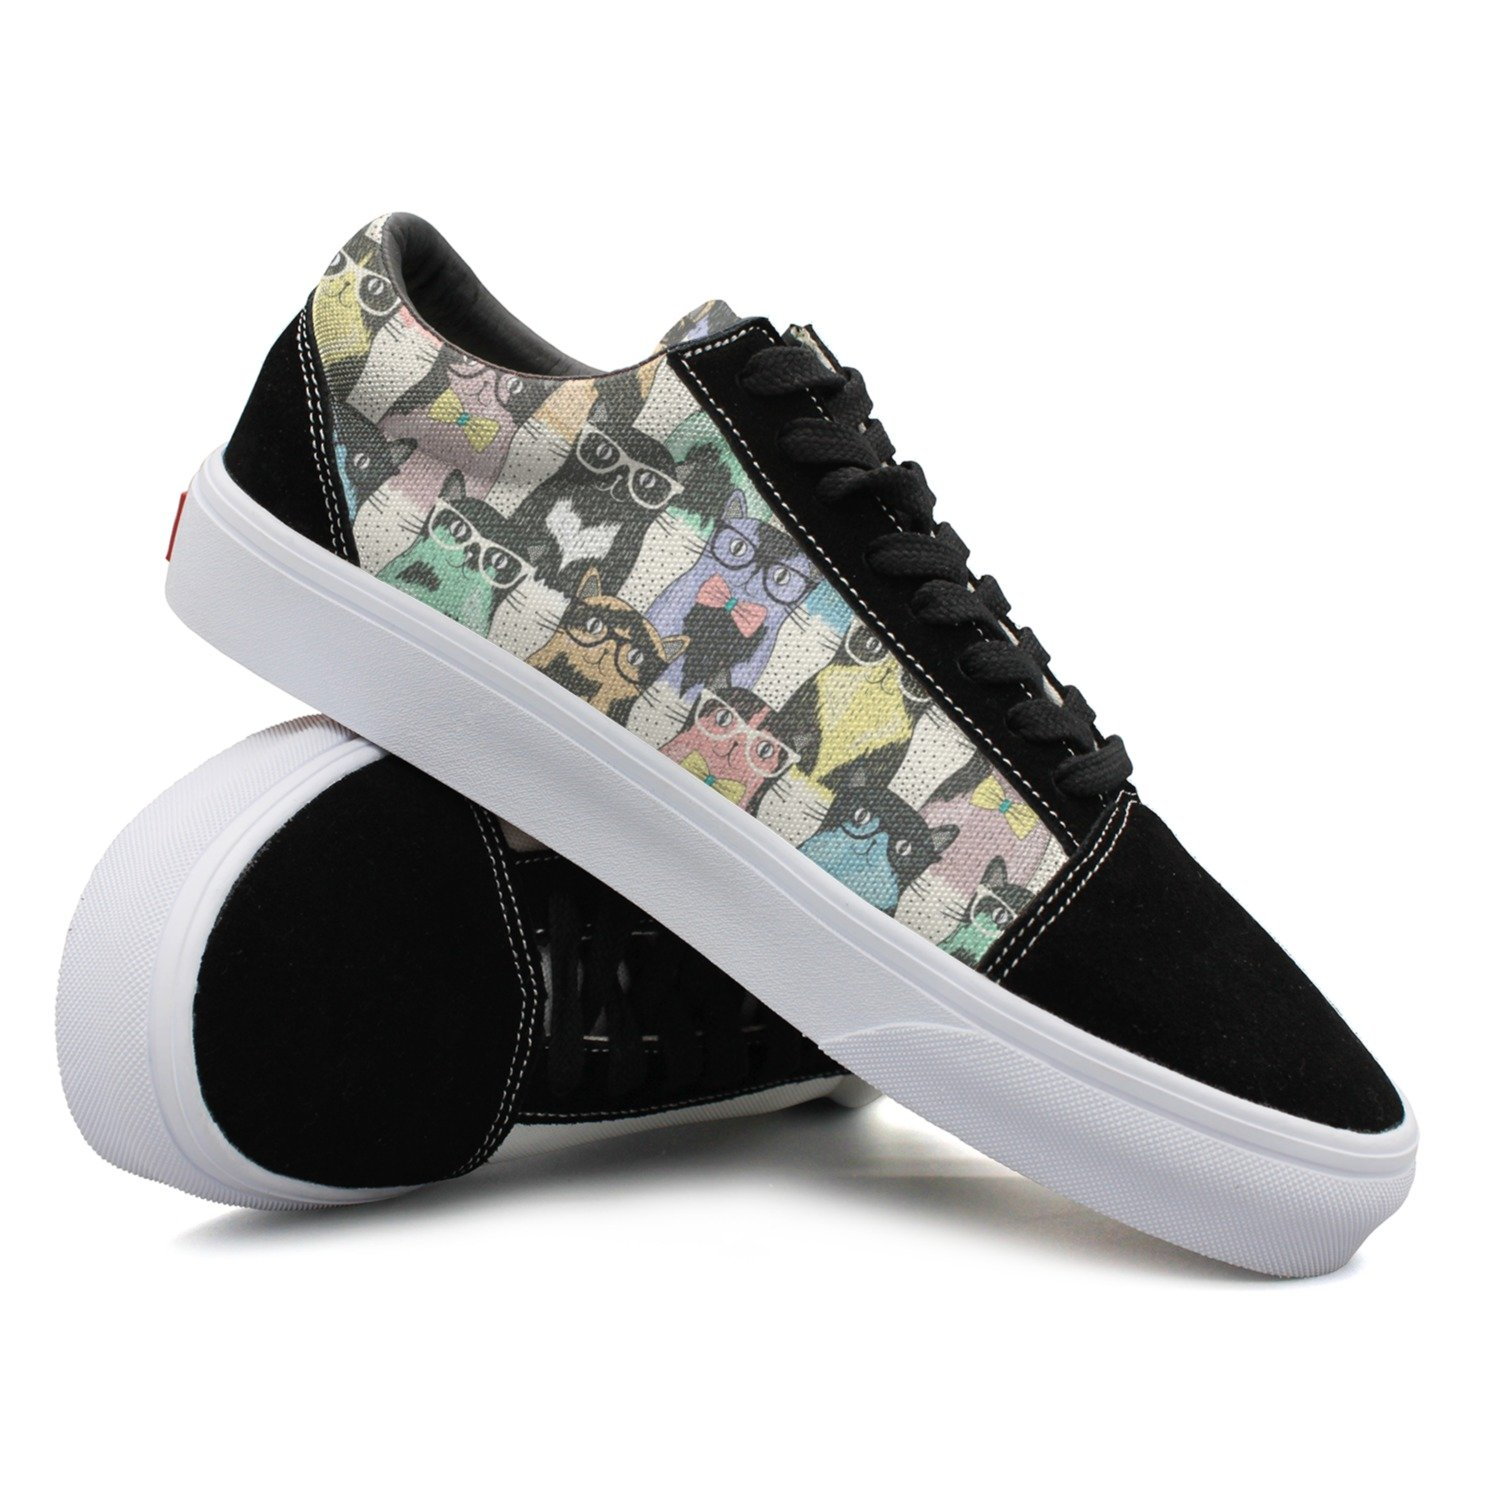 Hispter Cats With Glasses Men's Low-top Canvas Walking Shoes New Volleyball Sneakers